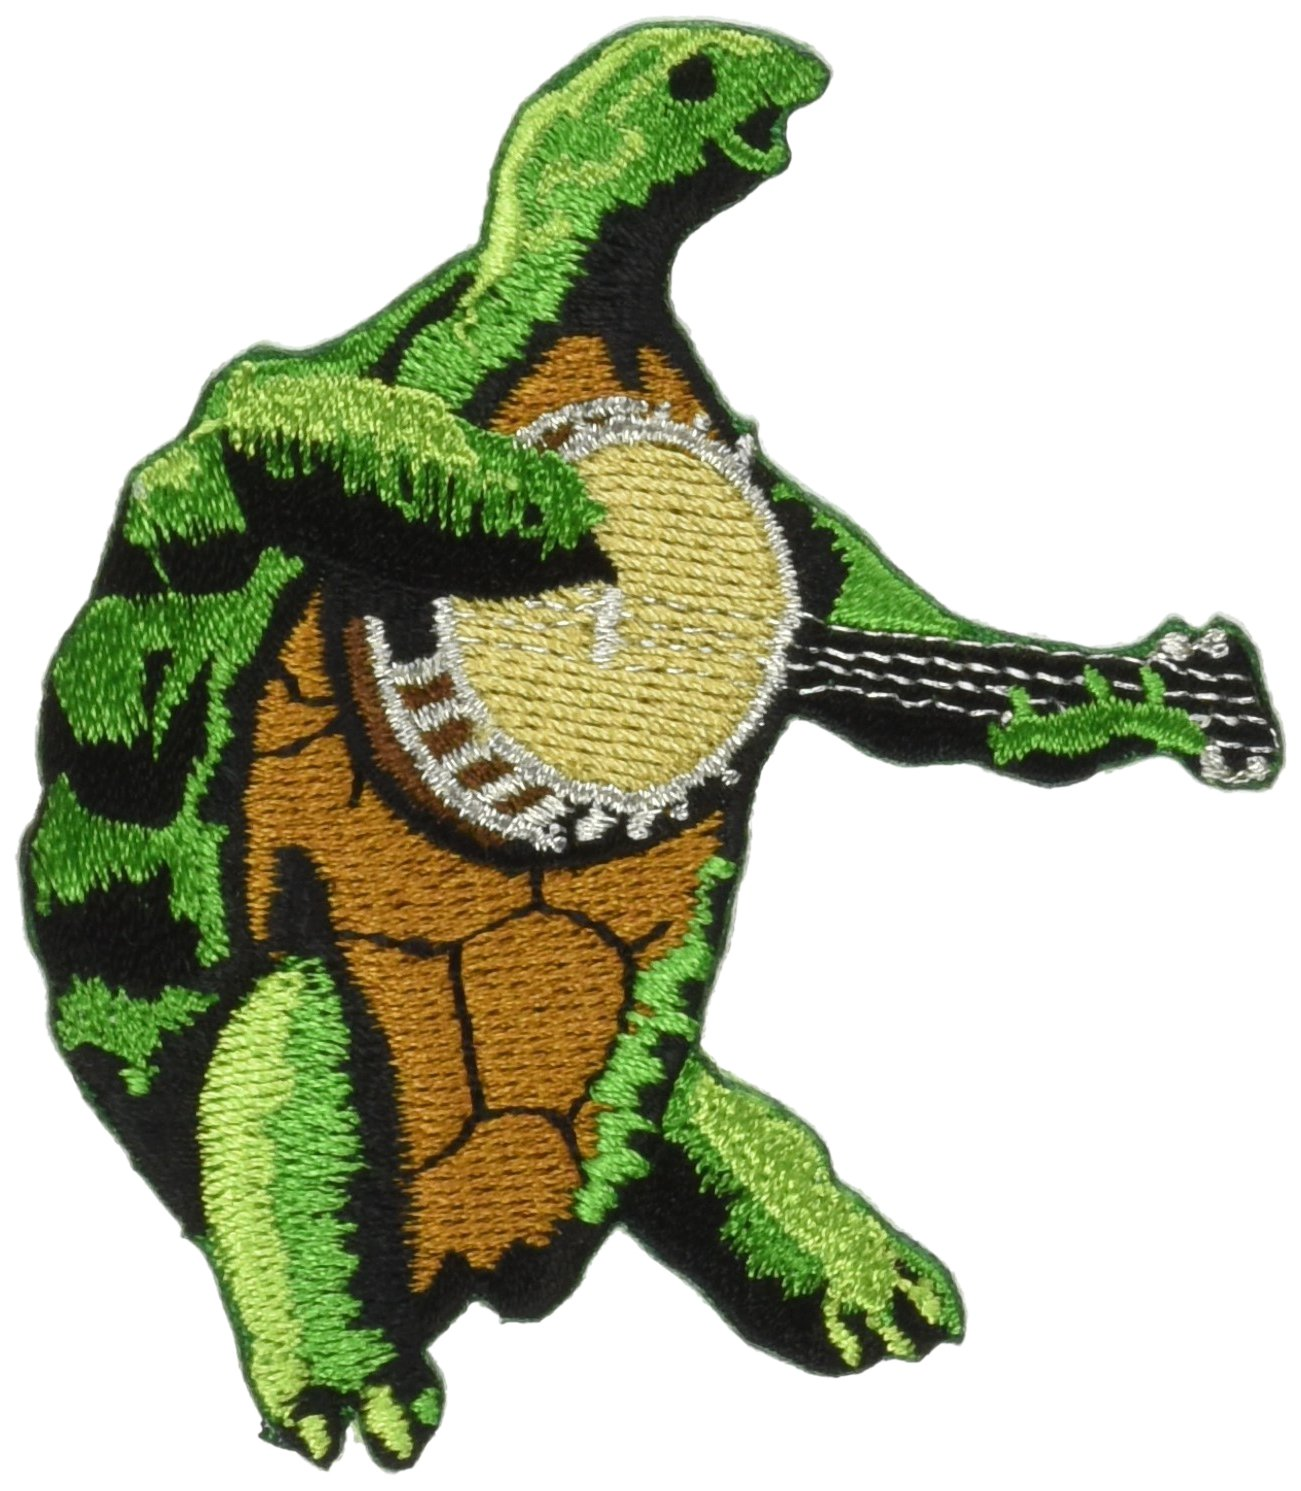 Officially Licensed Artwork High Quality Iron-On // Sew-On GRATEFUL DEAD Terrapin Banjo 3 x 2.5 Embroidered PATCH Flicken